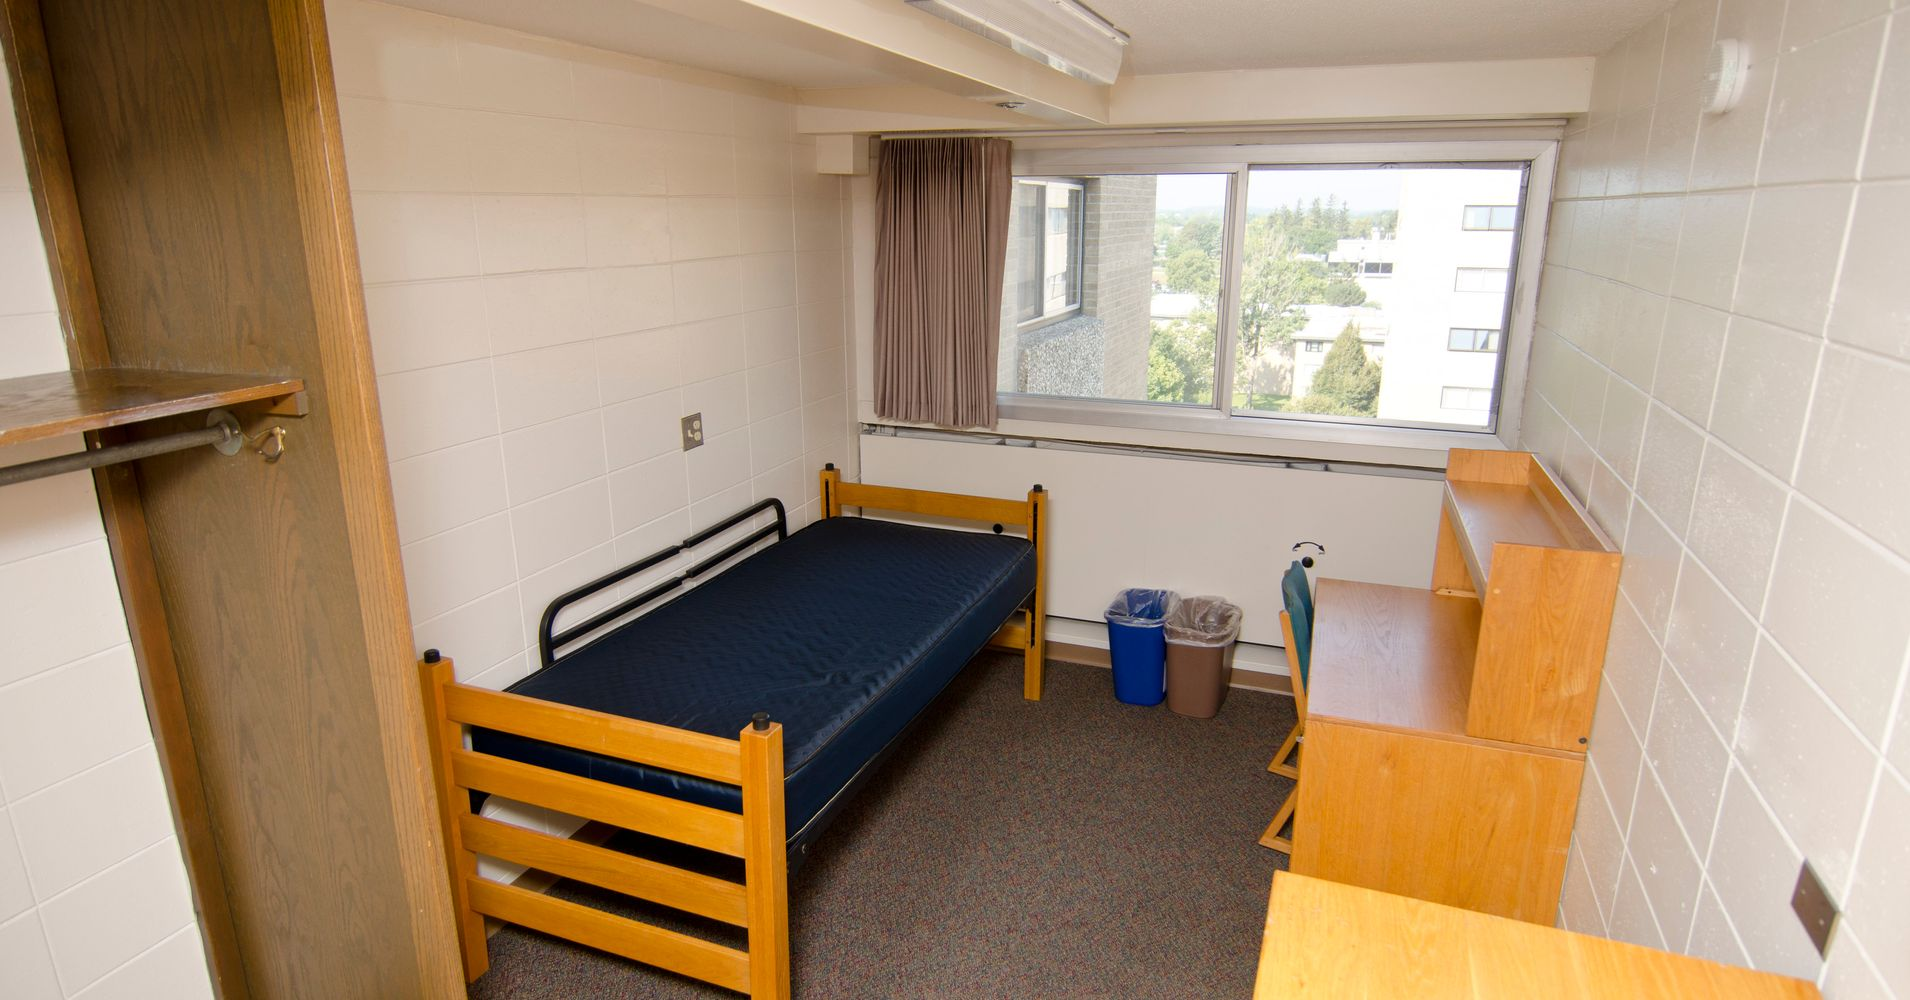 10 College Dorm Room Ideas To Make You Feel More At Home